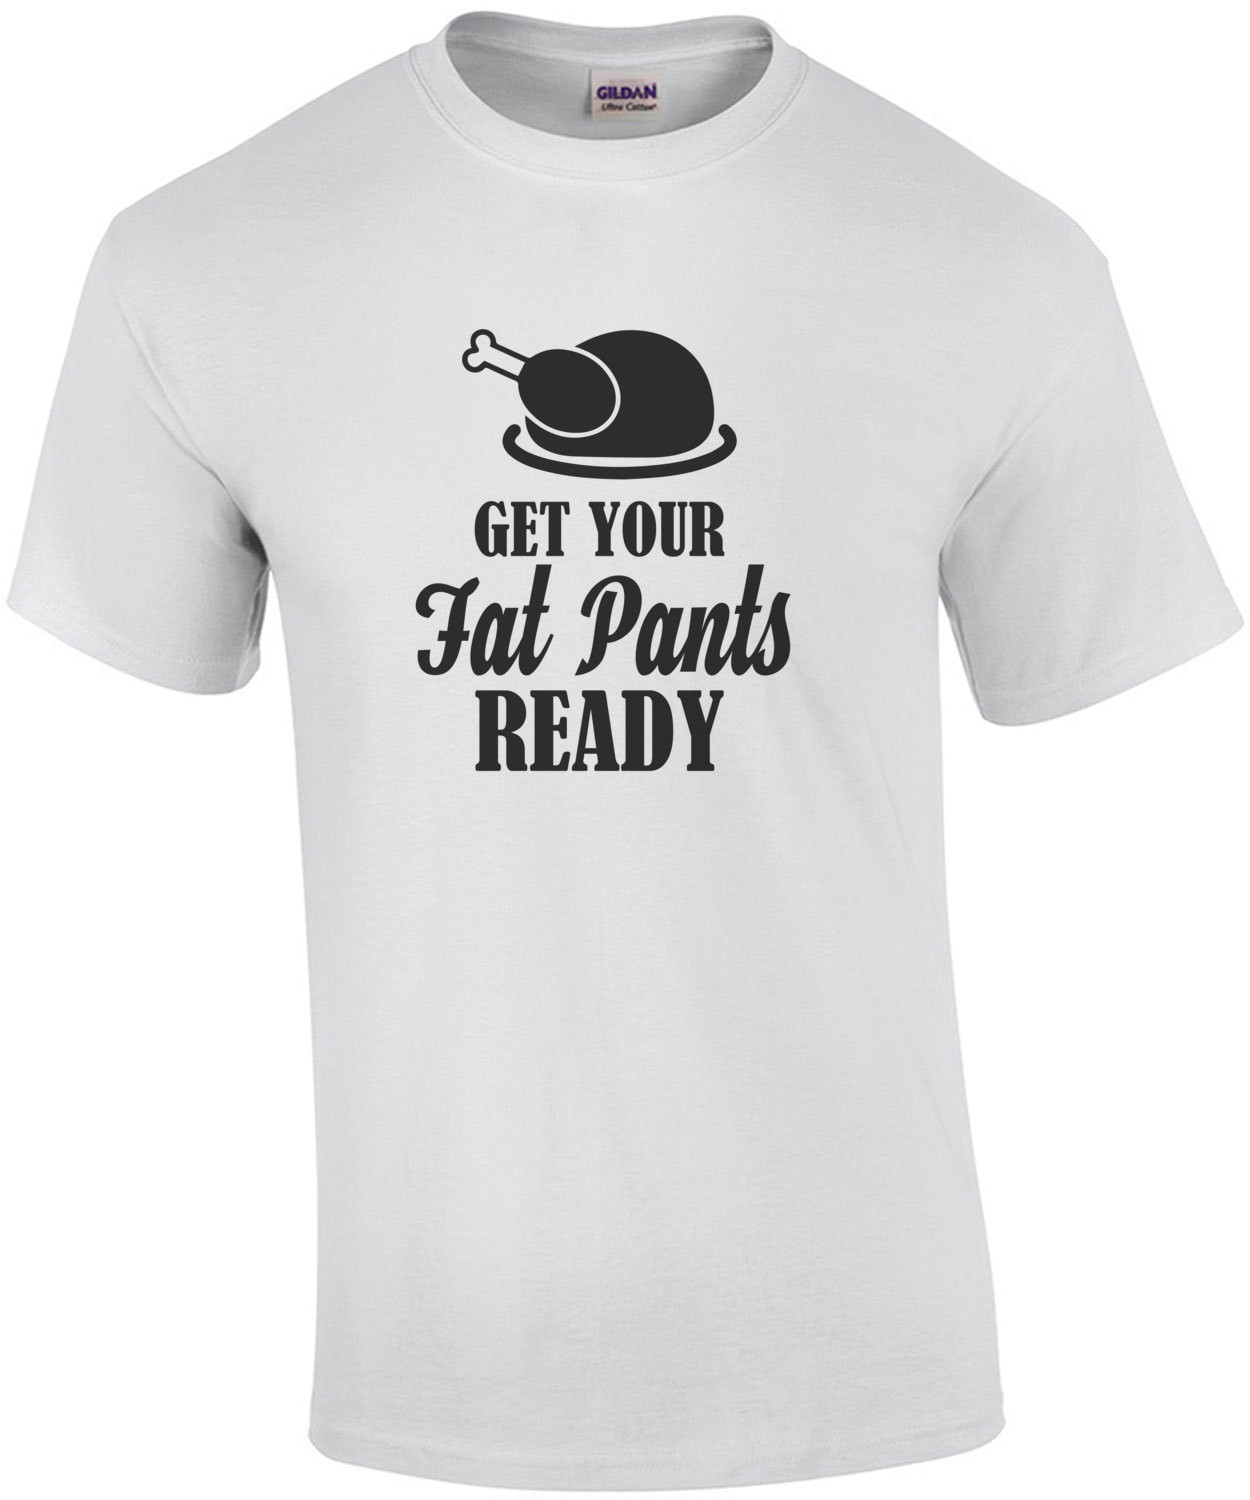 GET YOUR FAT PANTS READY! Funny Thanksgiving T-Shirt